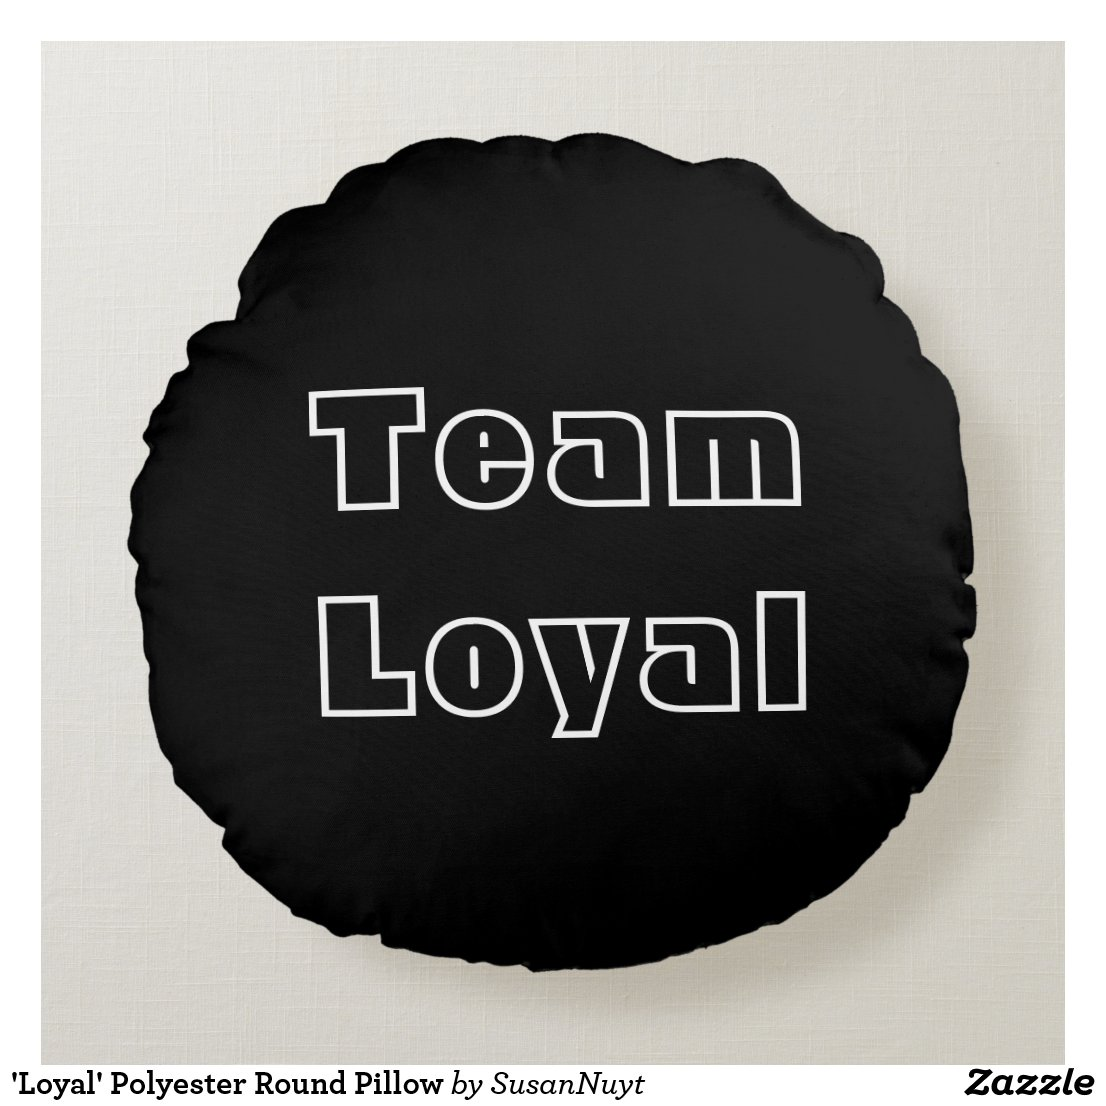 'Loyal' Polyester Round Pillow